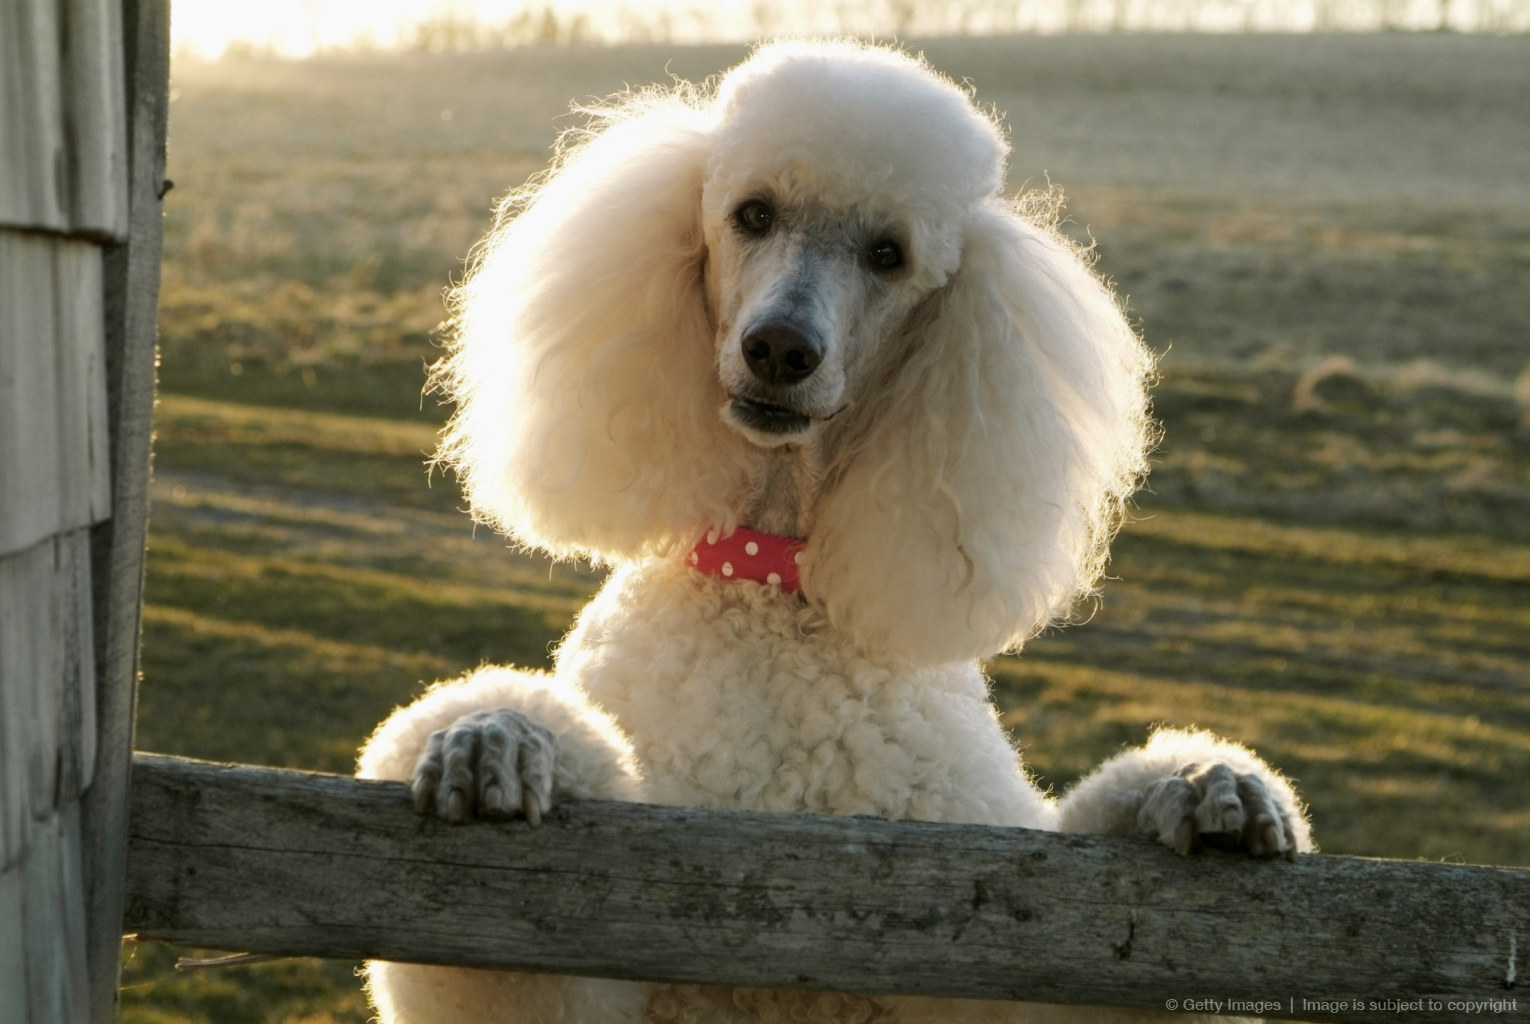 Poodle Leaning on Wooden Fence